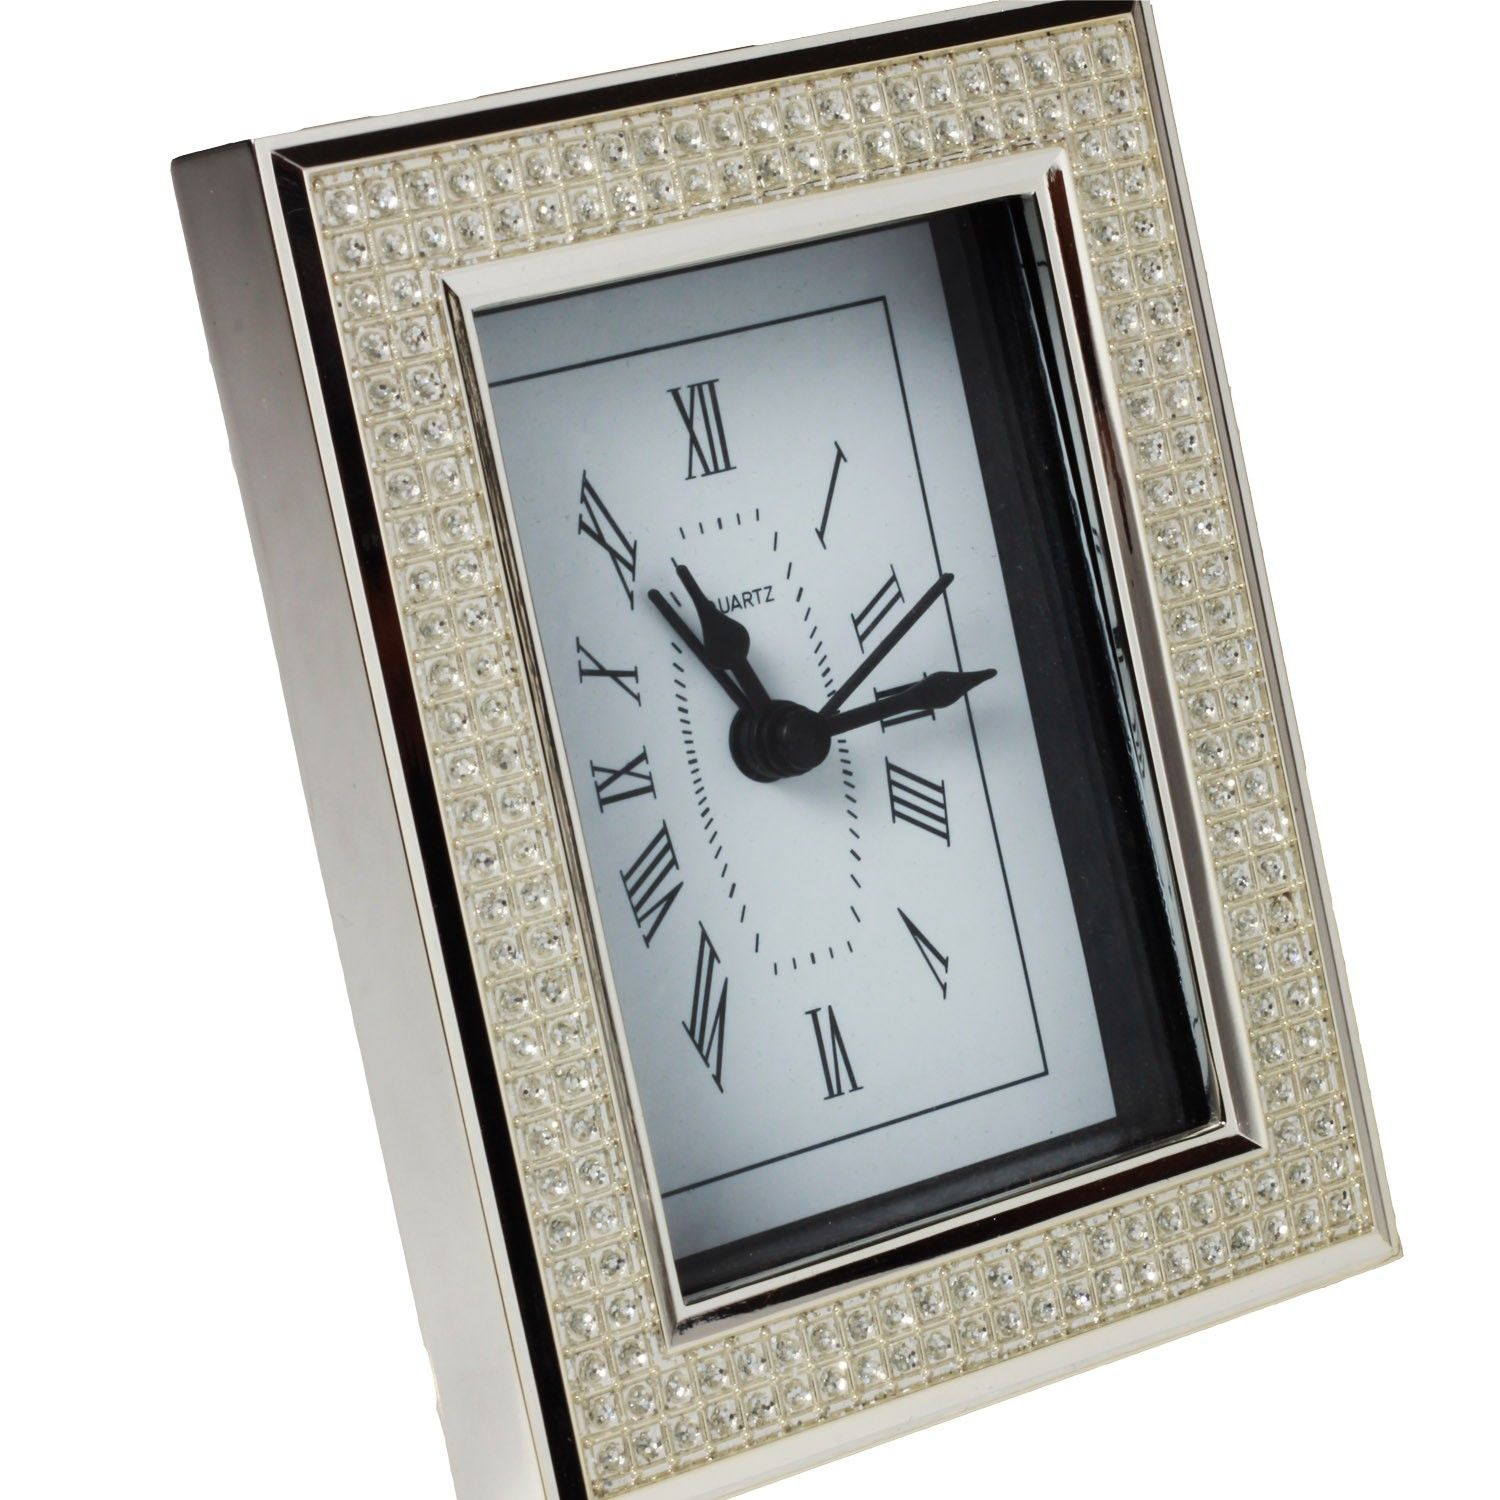 Silver Plated Alarm Clock - A practical alarm clock that is silver coated so you can wake up in style! Perfect gift for mom, dad or even the boss.